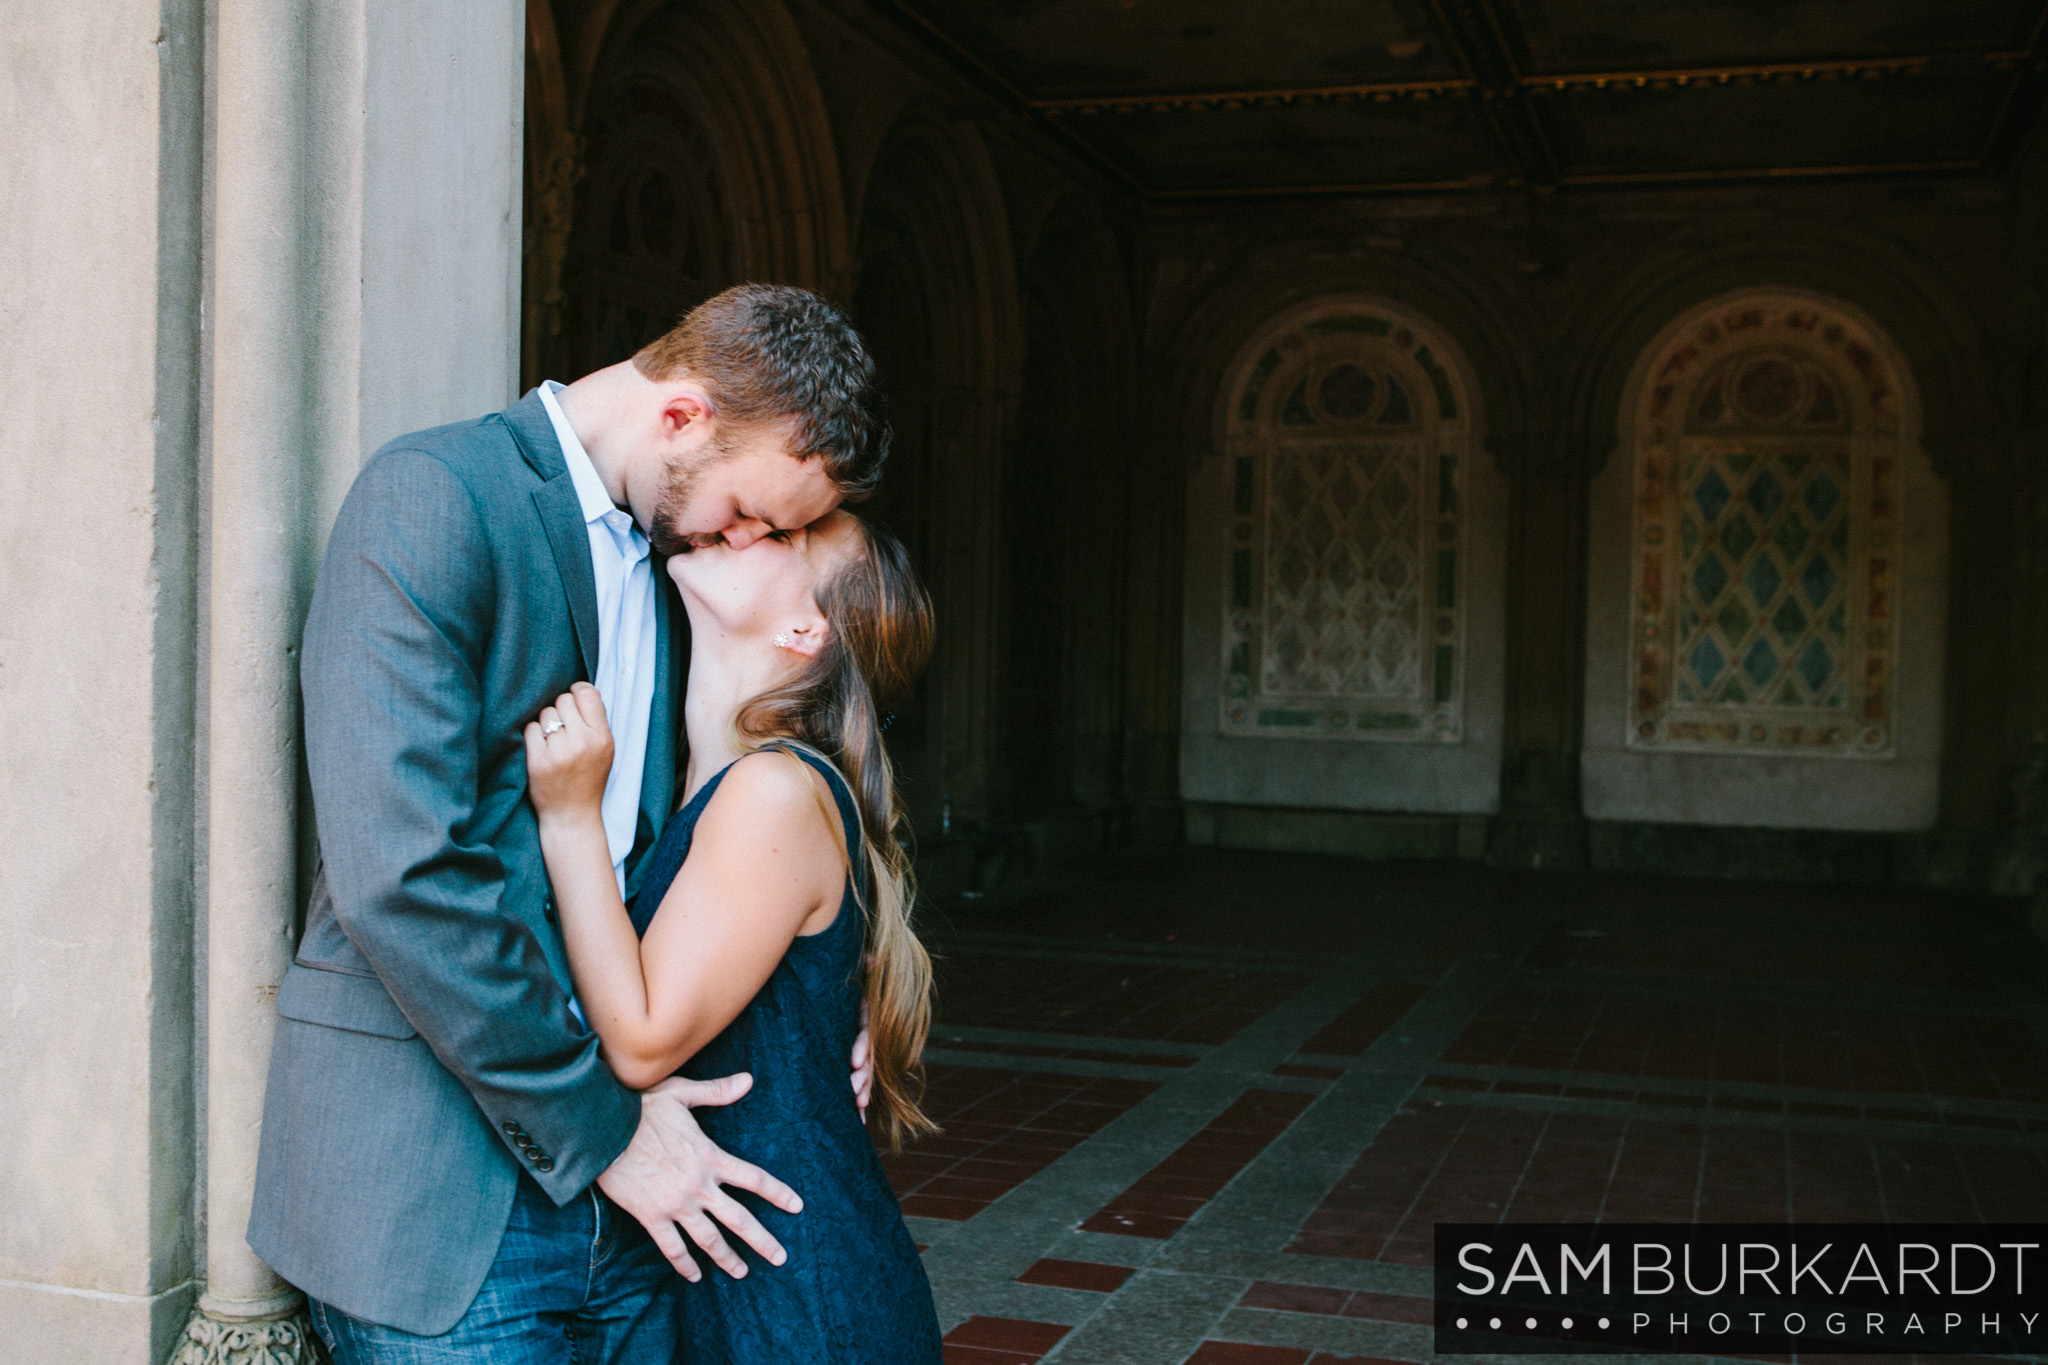 sburkardt_new_york_proposal_engagement_central_park_017.jpg